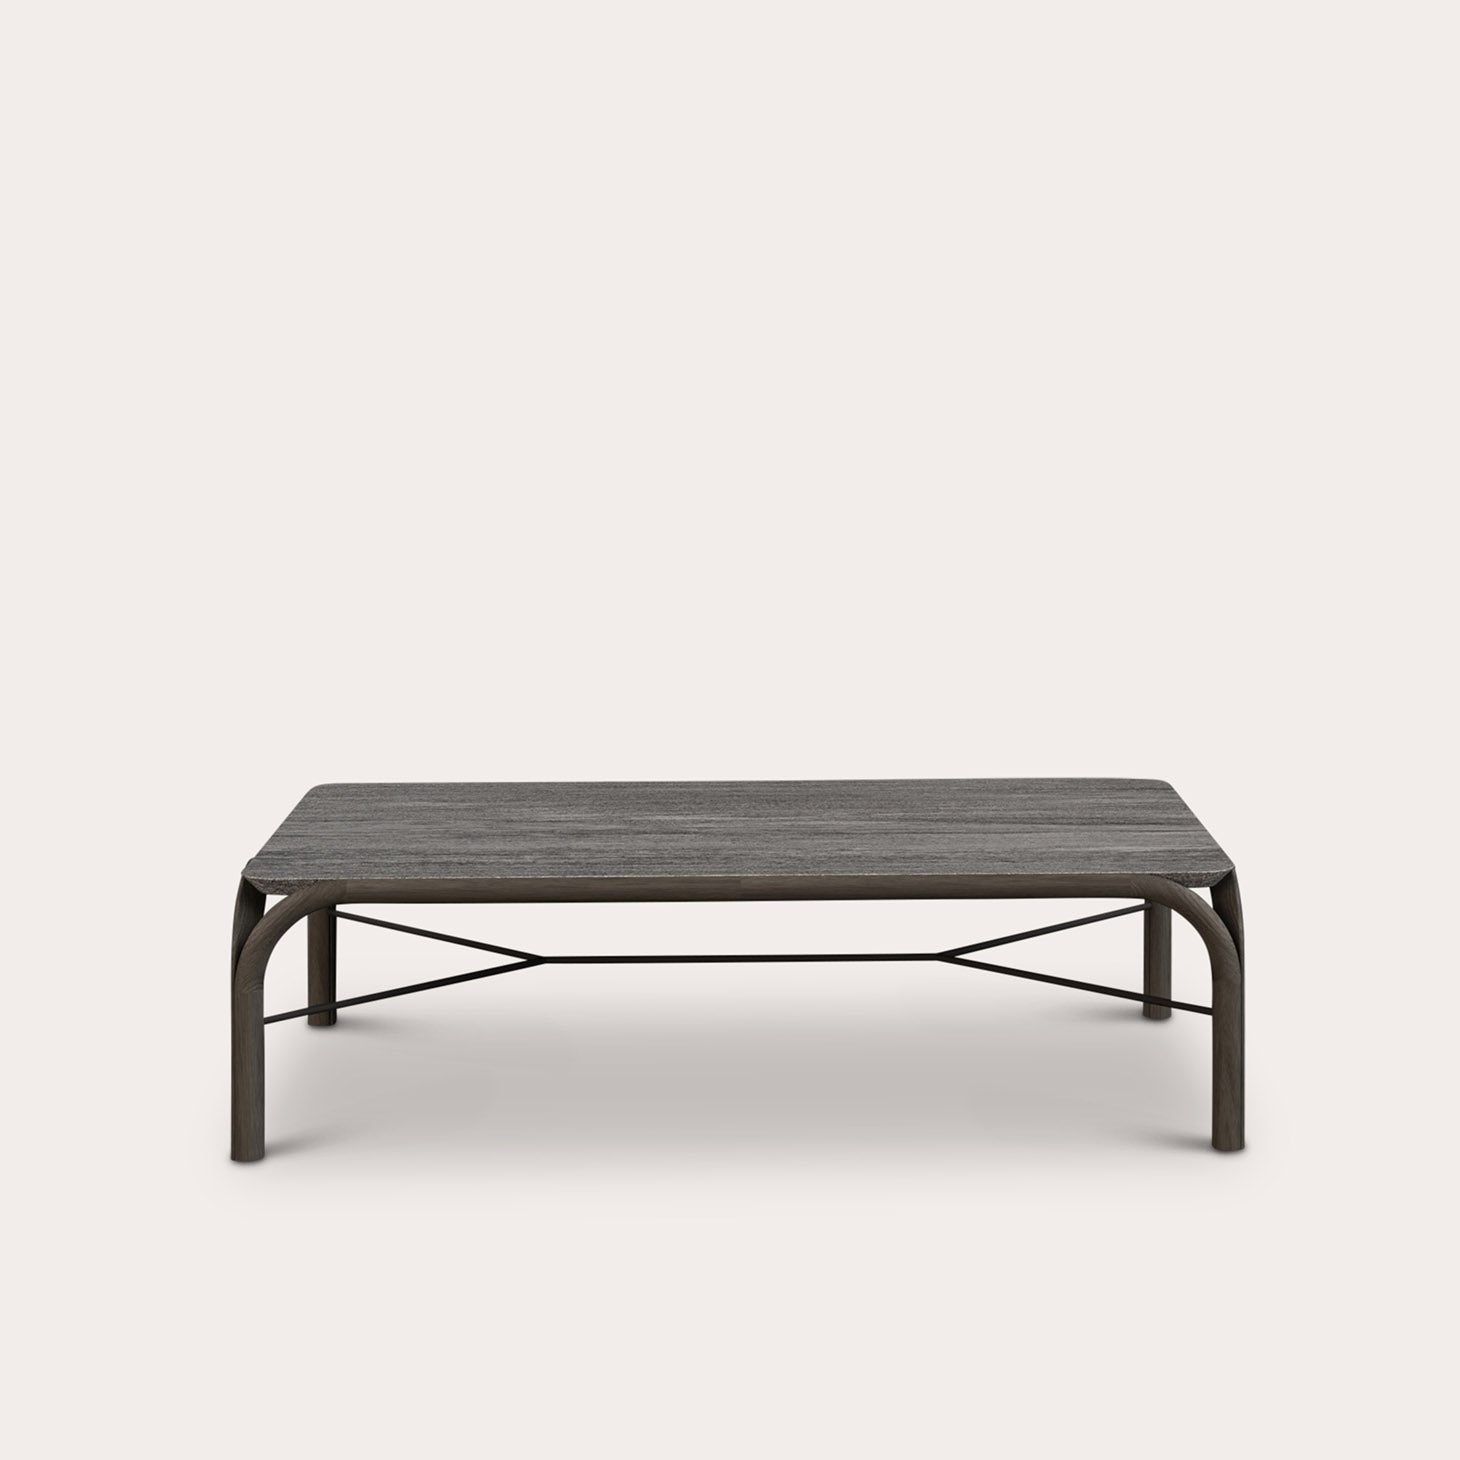 MAUA Coffee Table Tables Bruno Moinard Designer Furniture Sku: 773-230-10058